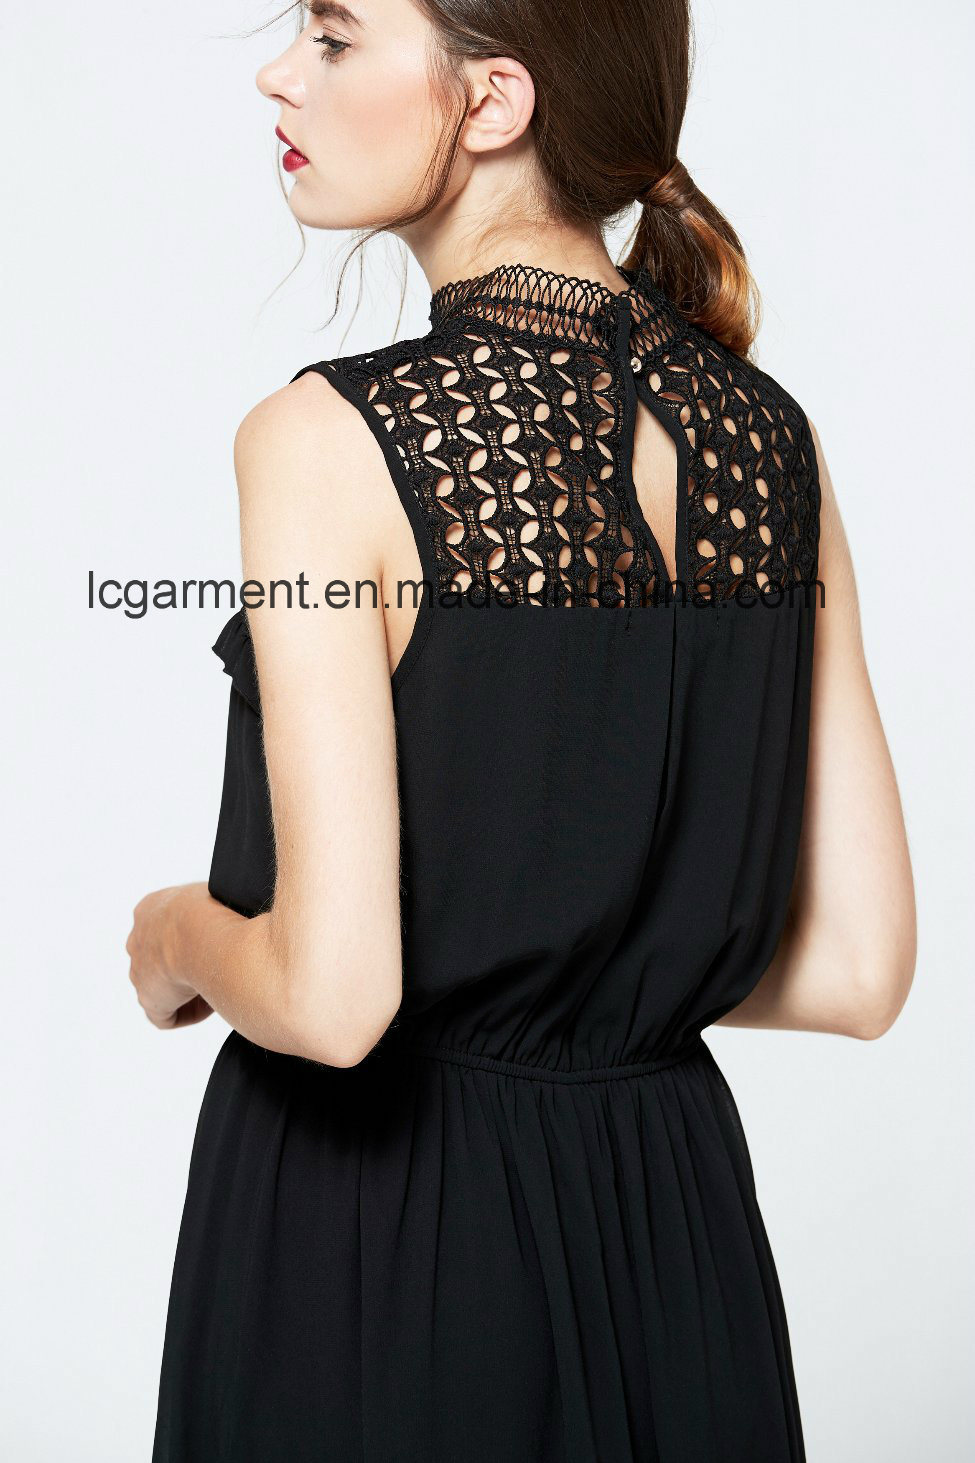 Elegant Black Sexy Lady Dress Beautiful Sleeveless Maxi Summer Dress